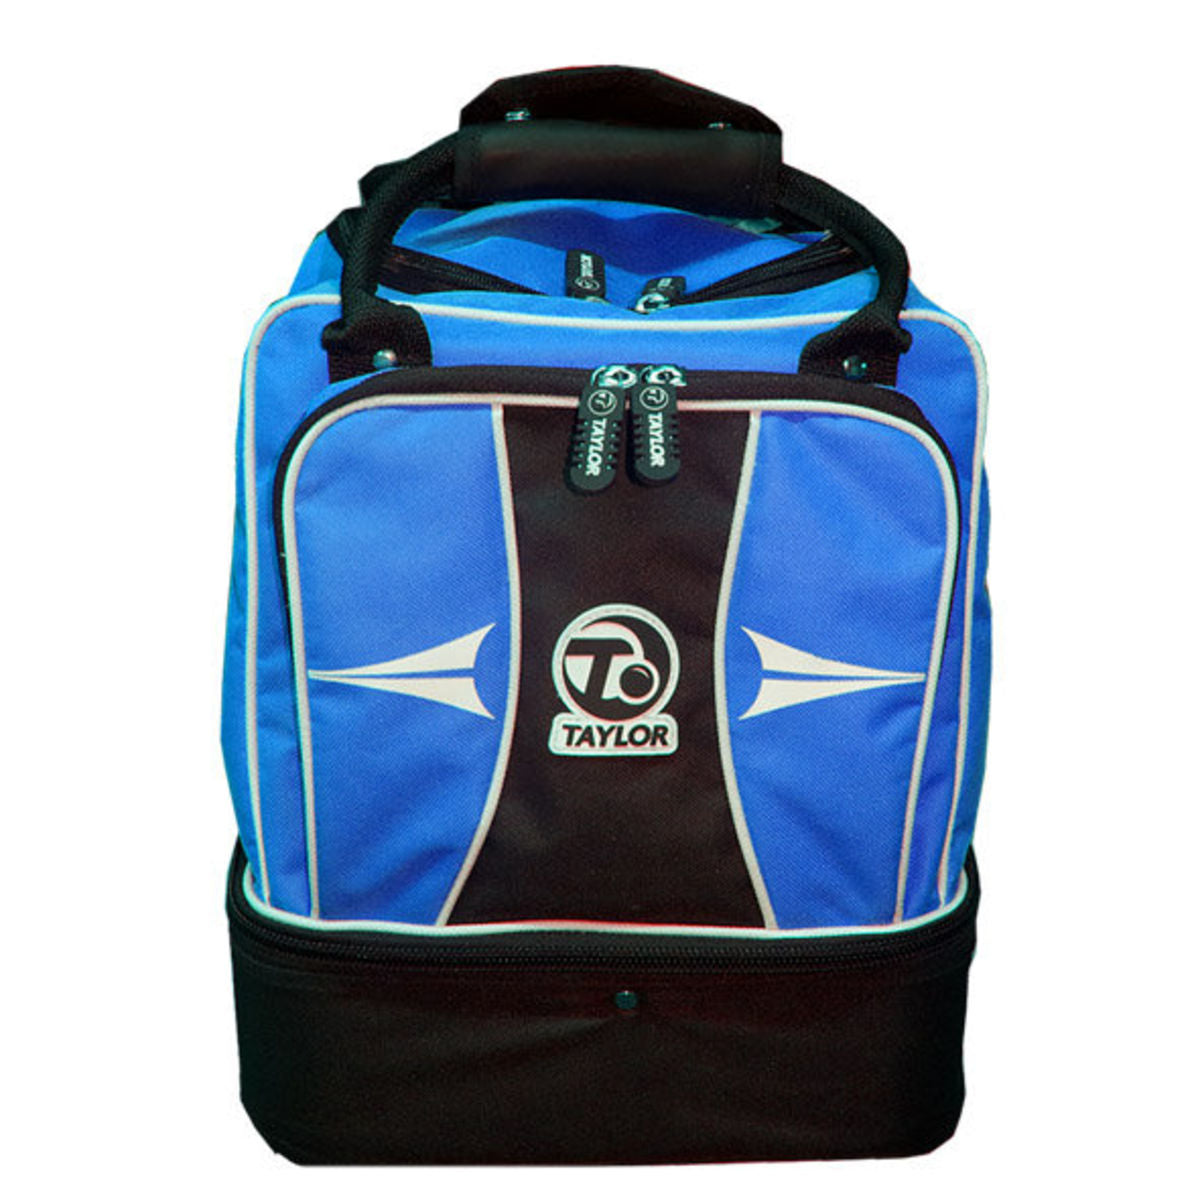 Taylor Mini Sports Bag - Blue